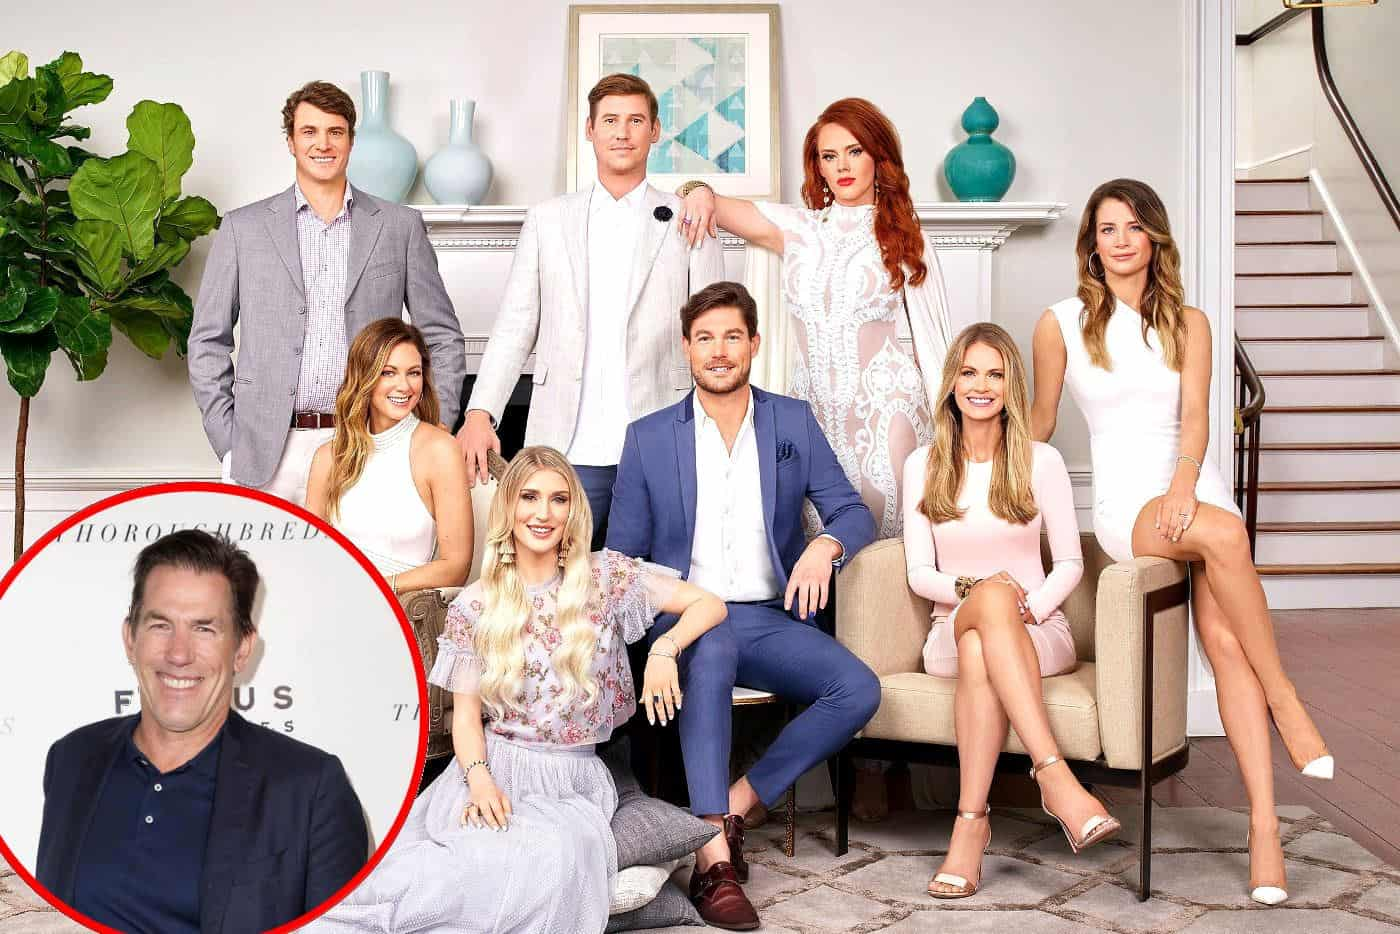 REPORT: Southern Charm Producers Are Facing 'Cast Issues' Which is Delaying New Season, Is Thomas Ravenel Trying to Return? And Did They Scrap Four Weeks of Footage?